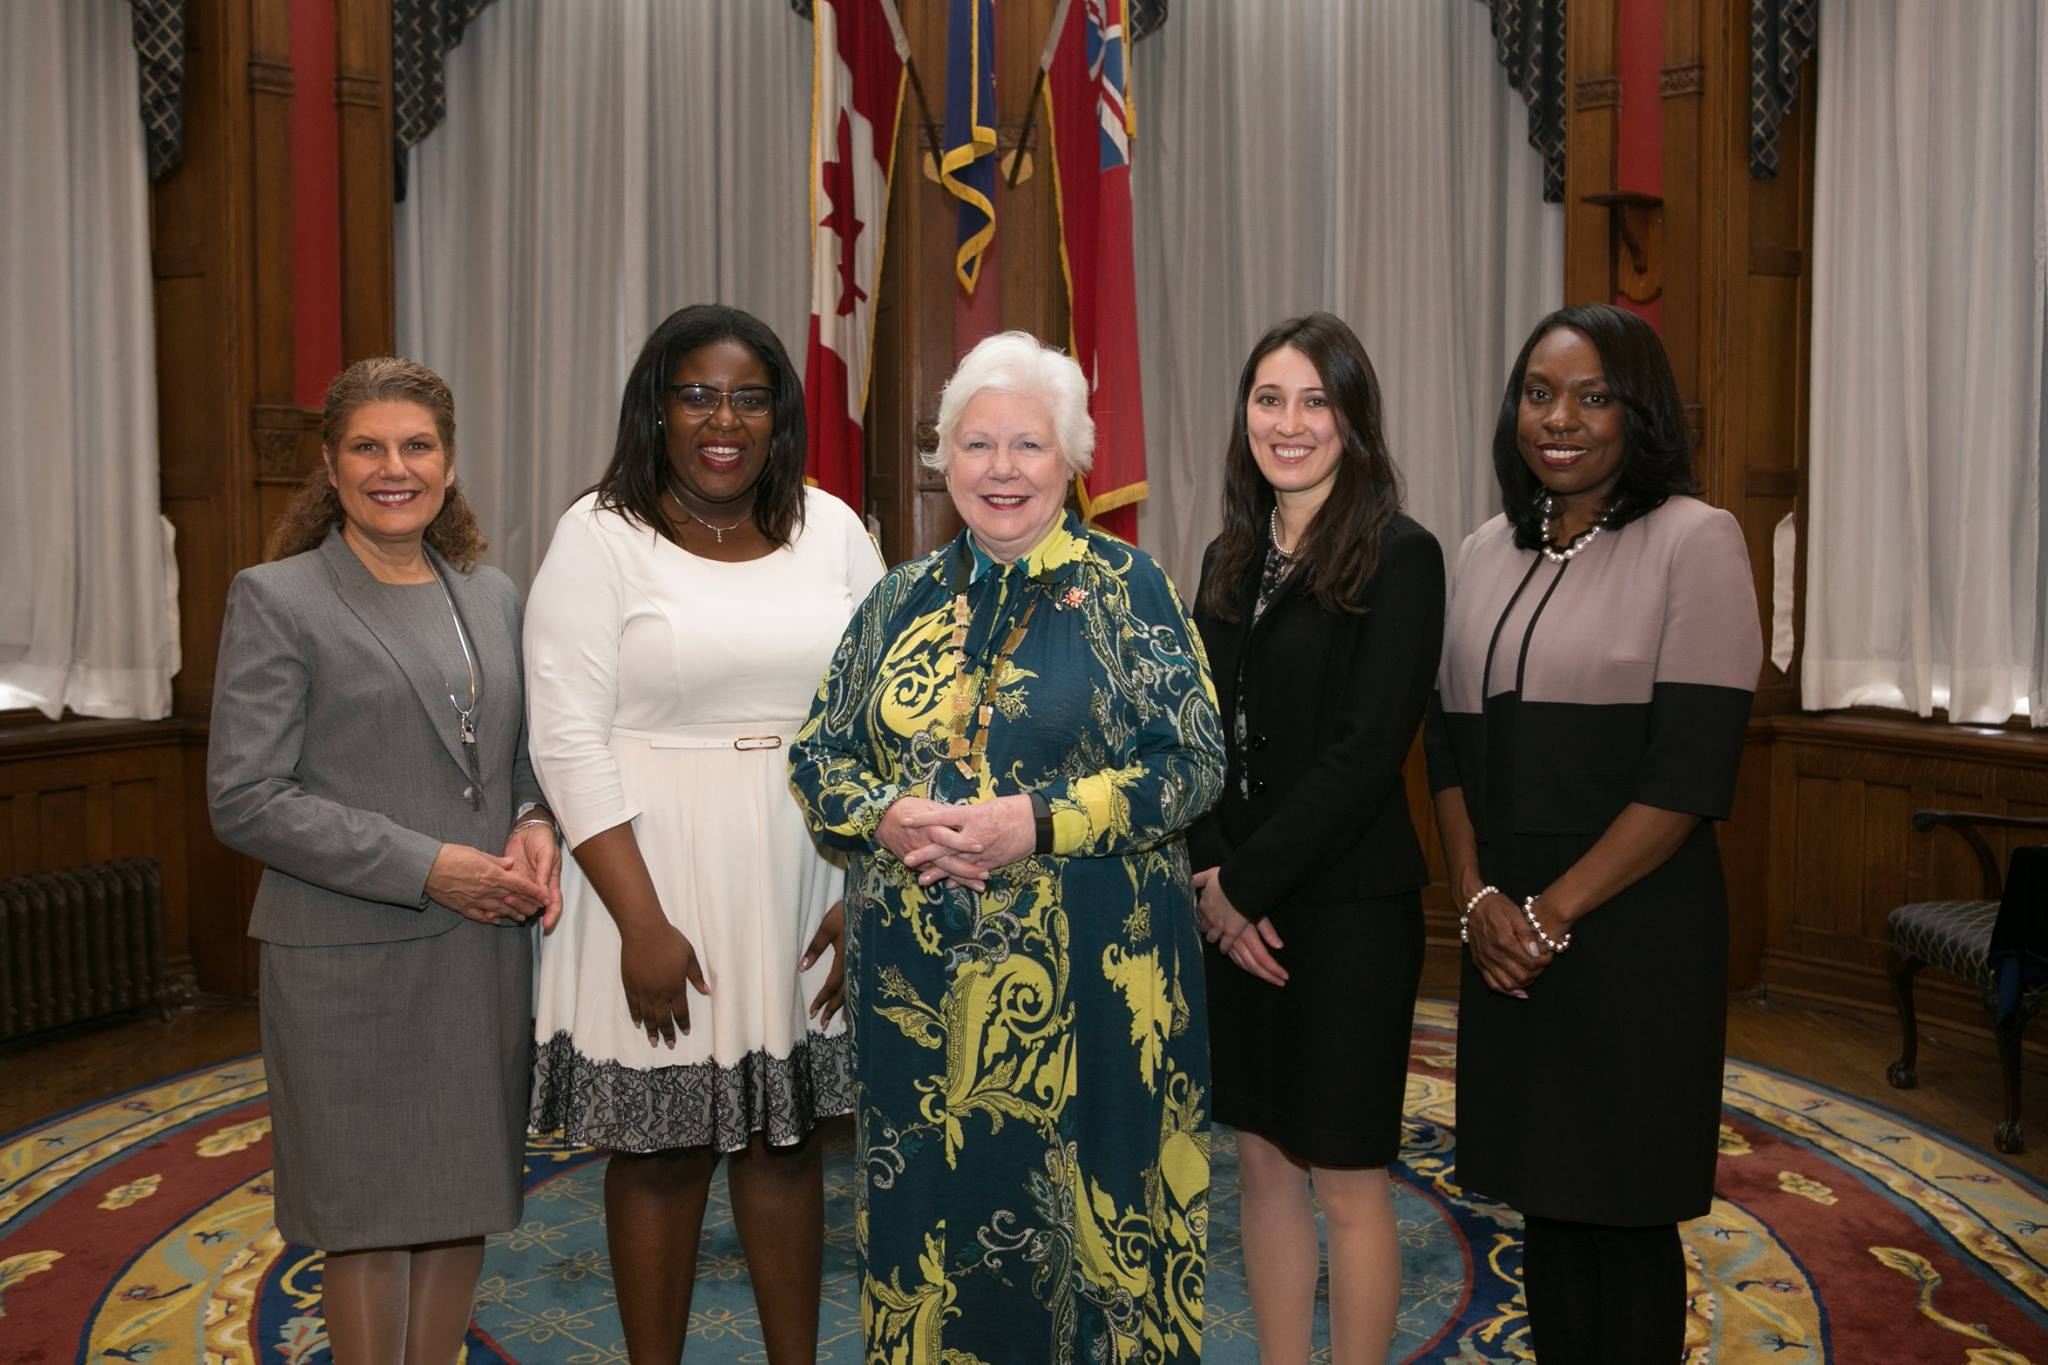 Honourable Laura Albanese, Minister of Citizenship and Immigration, Tia John - Student Recipient, Her Honour the Honourable Elizabeth Dowdeswell, Alexis Spieldenner (Co-Founder of Bravo Niagara!), and Honourable Mitzie Hunter, Minister of Education.